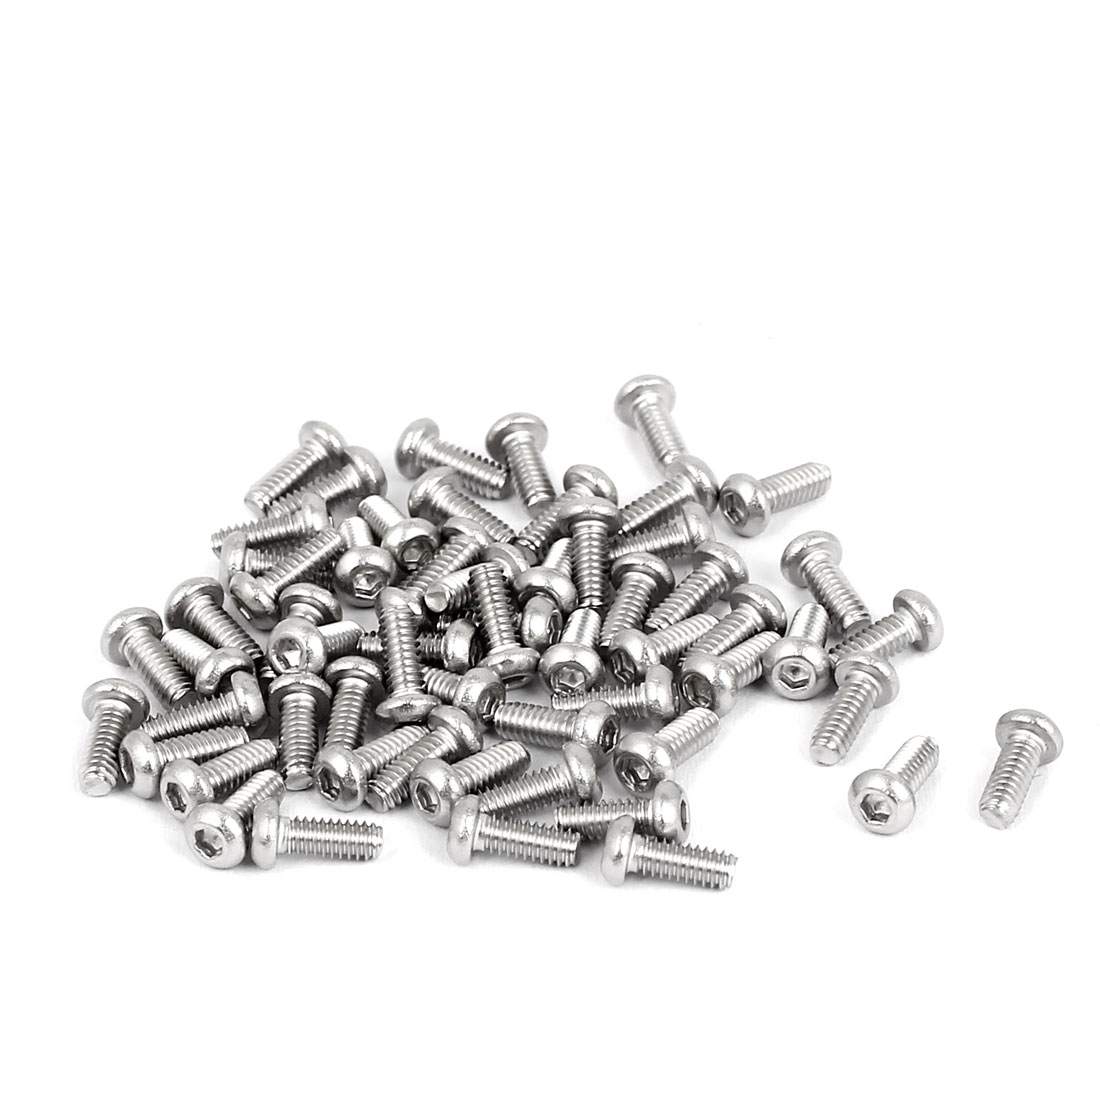 50 Pcs M2 x 5mm Silver Tone Stainless Steel Button Head Socket Cap Screw